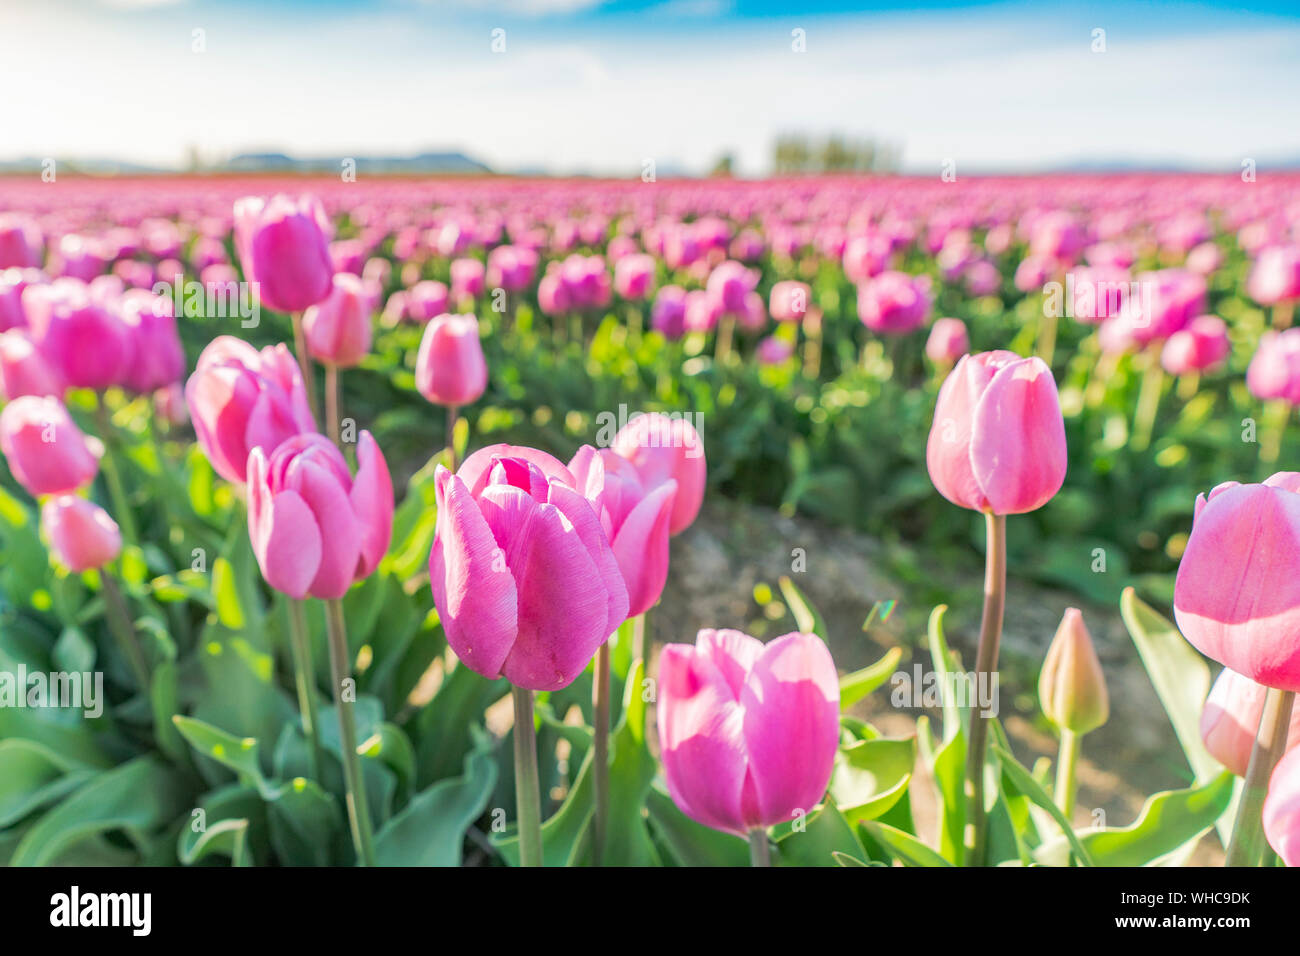 Pastel pink tulip field growing in the sun. Stock Photo